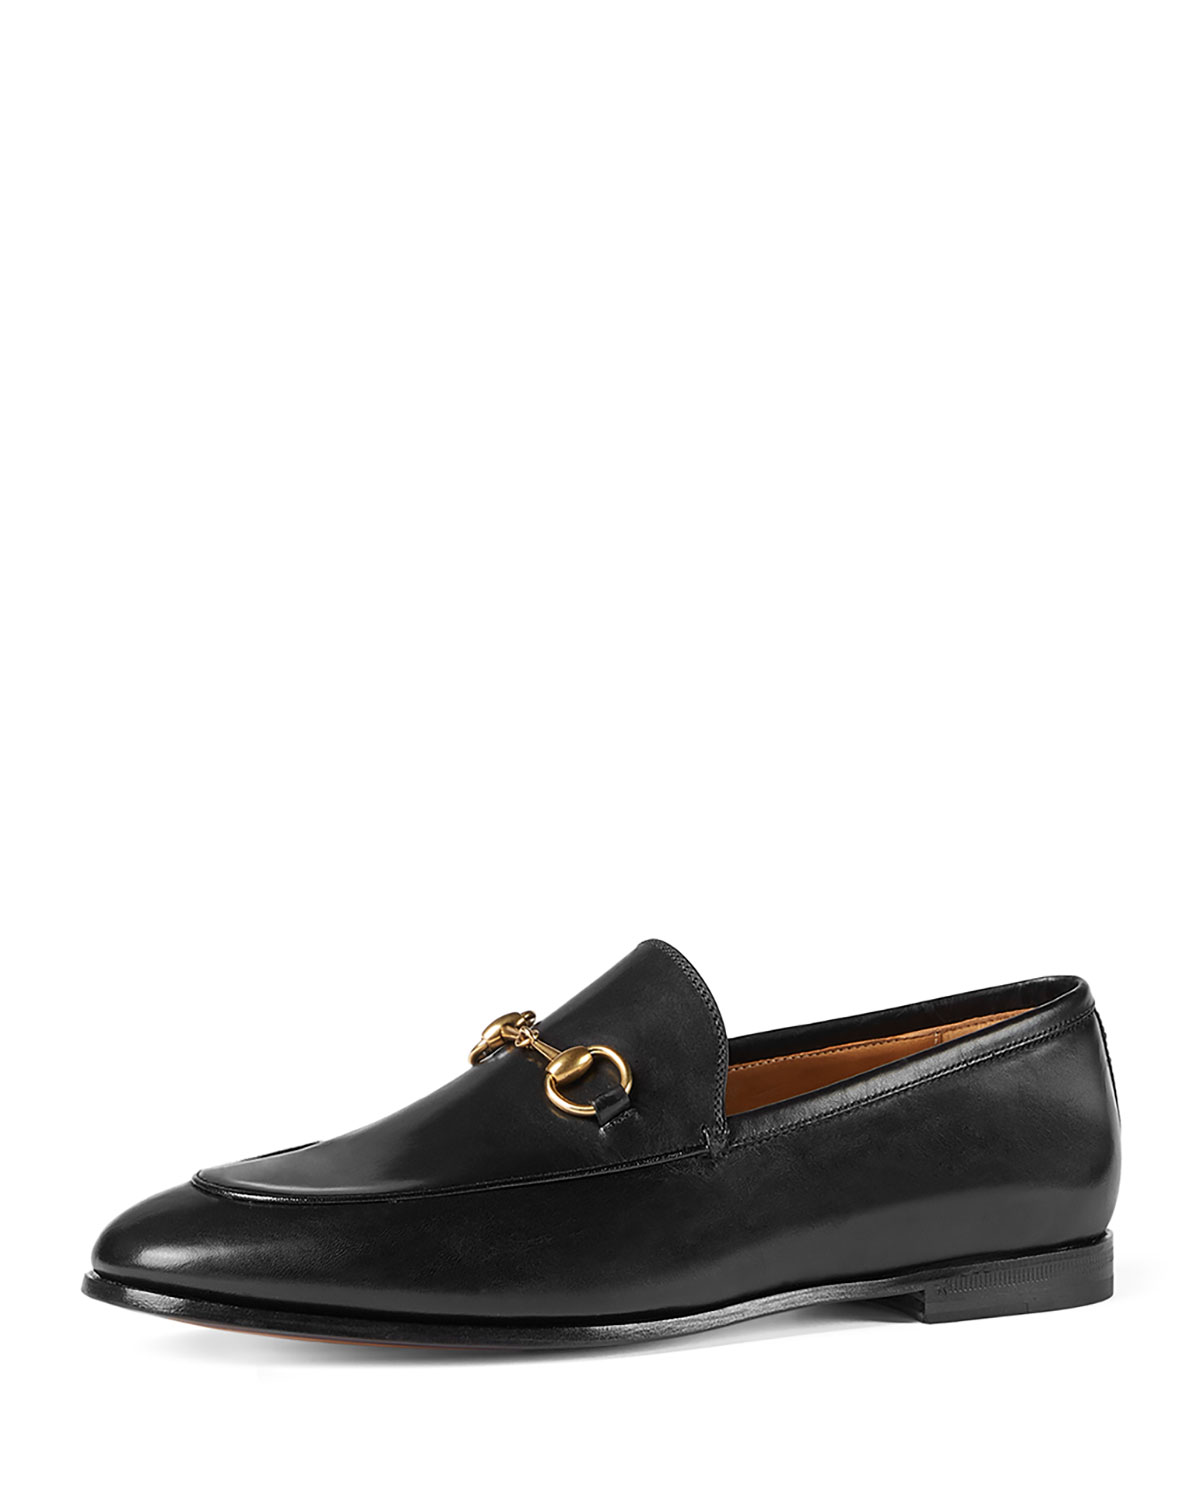 3ef312e044d6 Gucci Jordaan Leather Bit Loafer